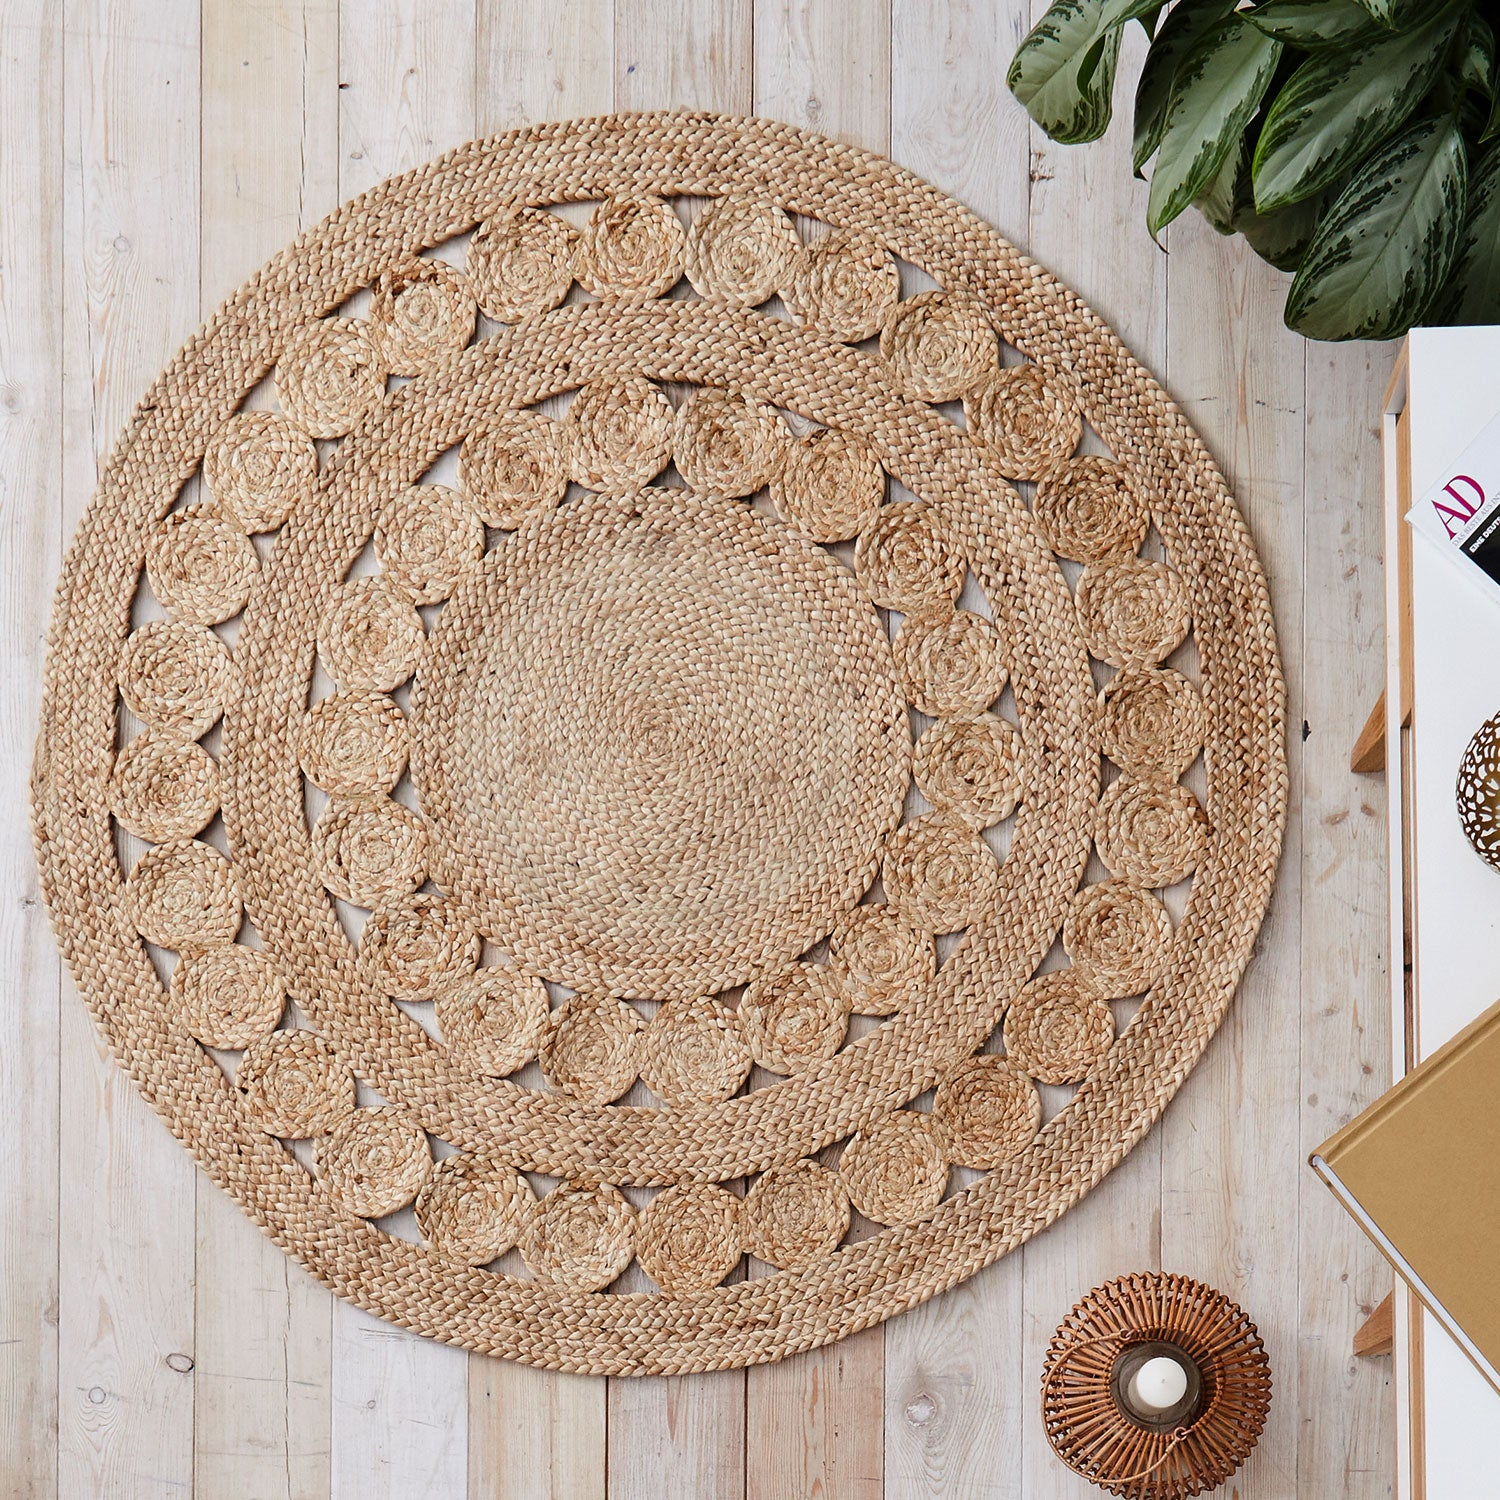 Excel Handwoven Round Jute Rug (Natural)